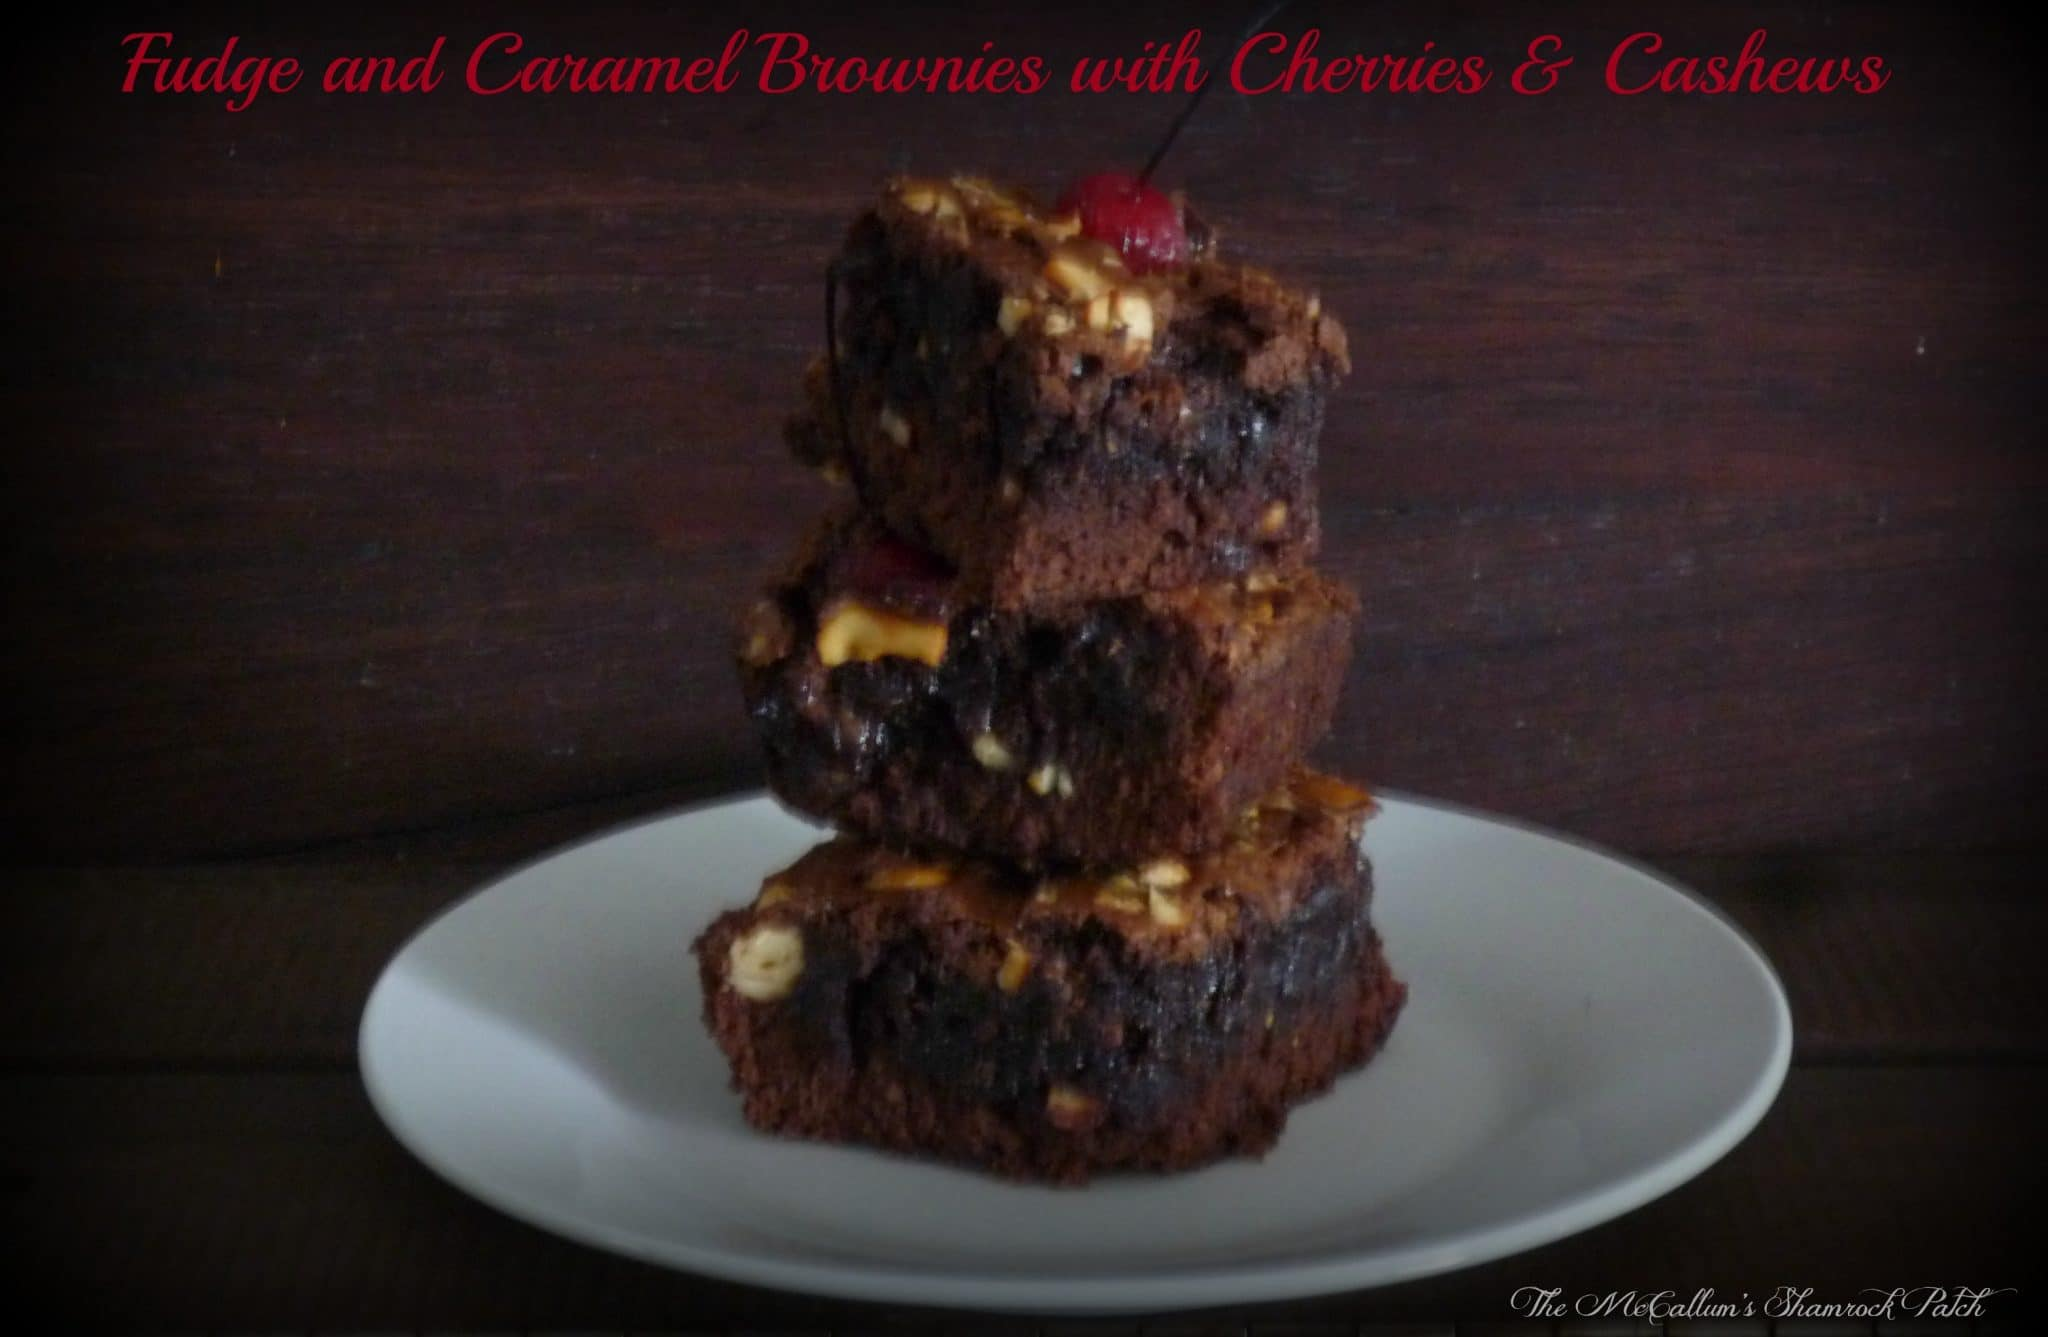 Fudge and Caramel Brownies with Cherries & Cashews